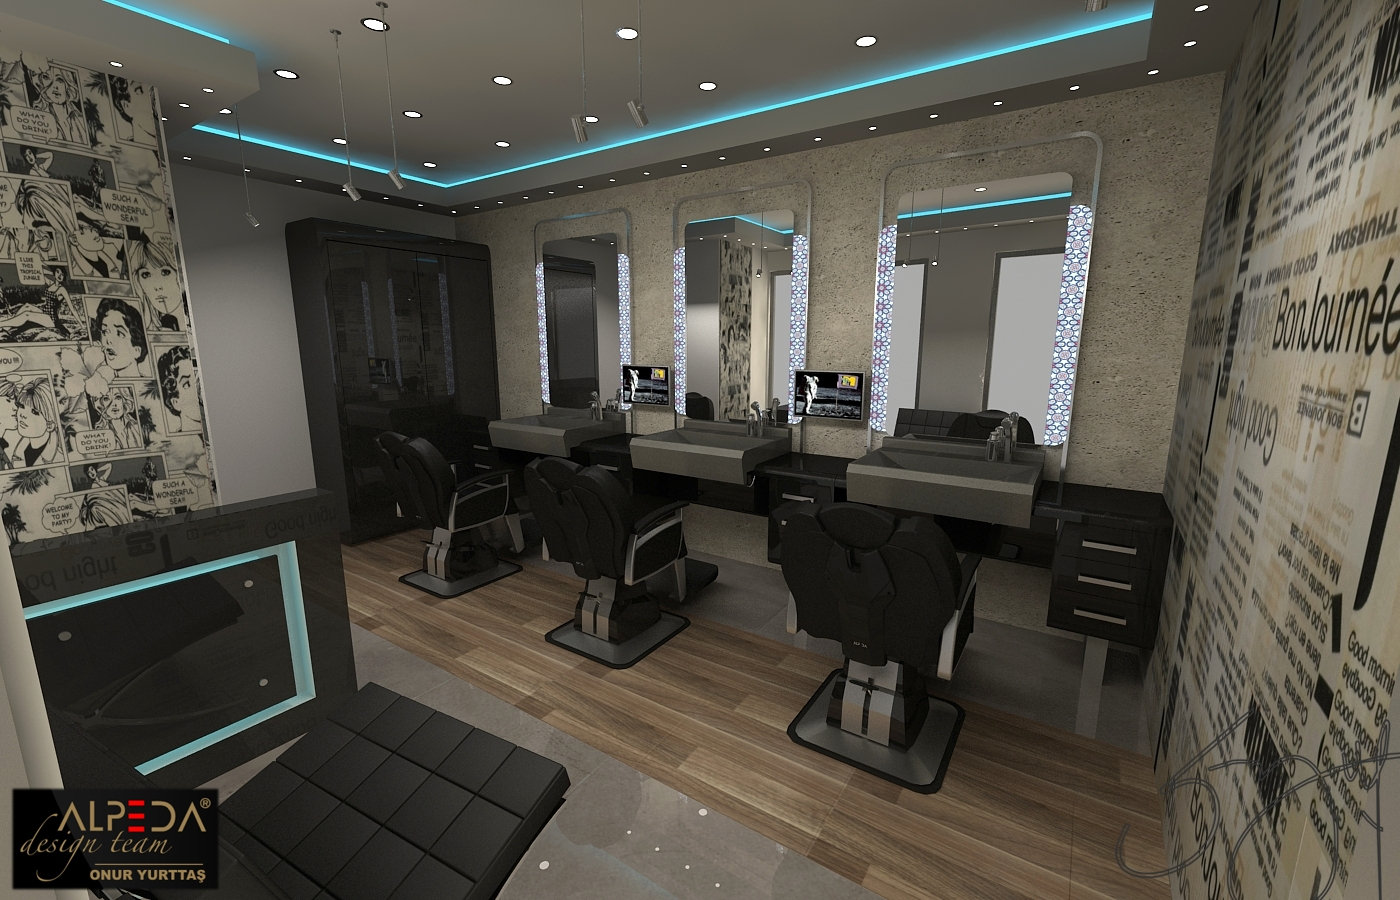 Coiffure salon design by onur yurttas at - Salon architecture ...